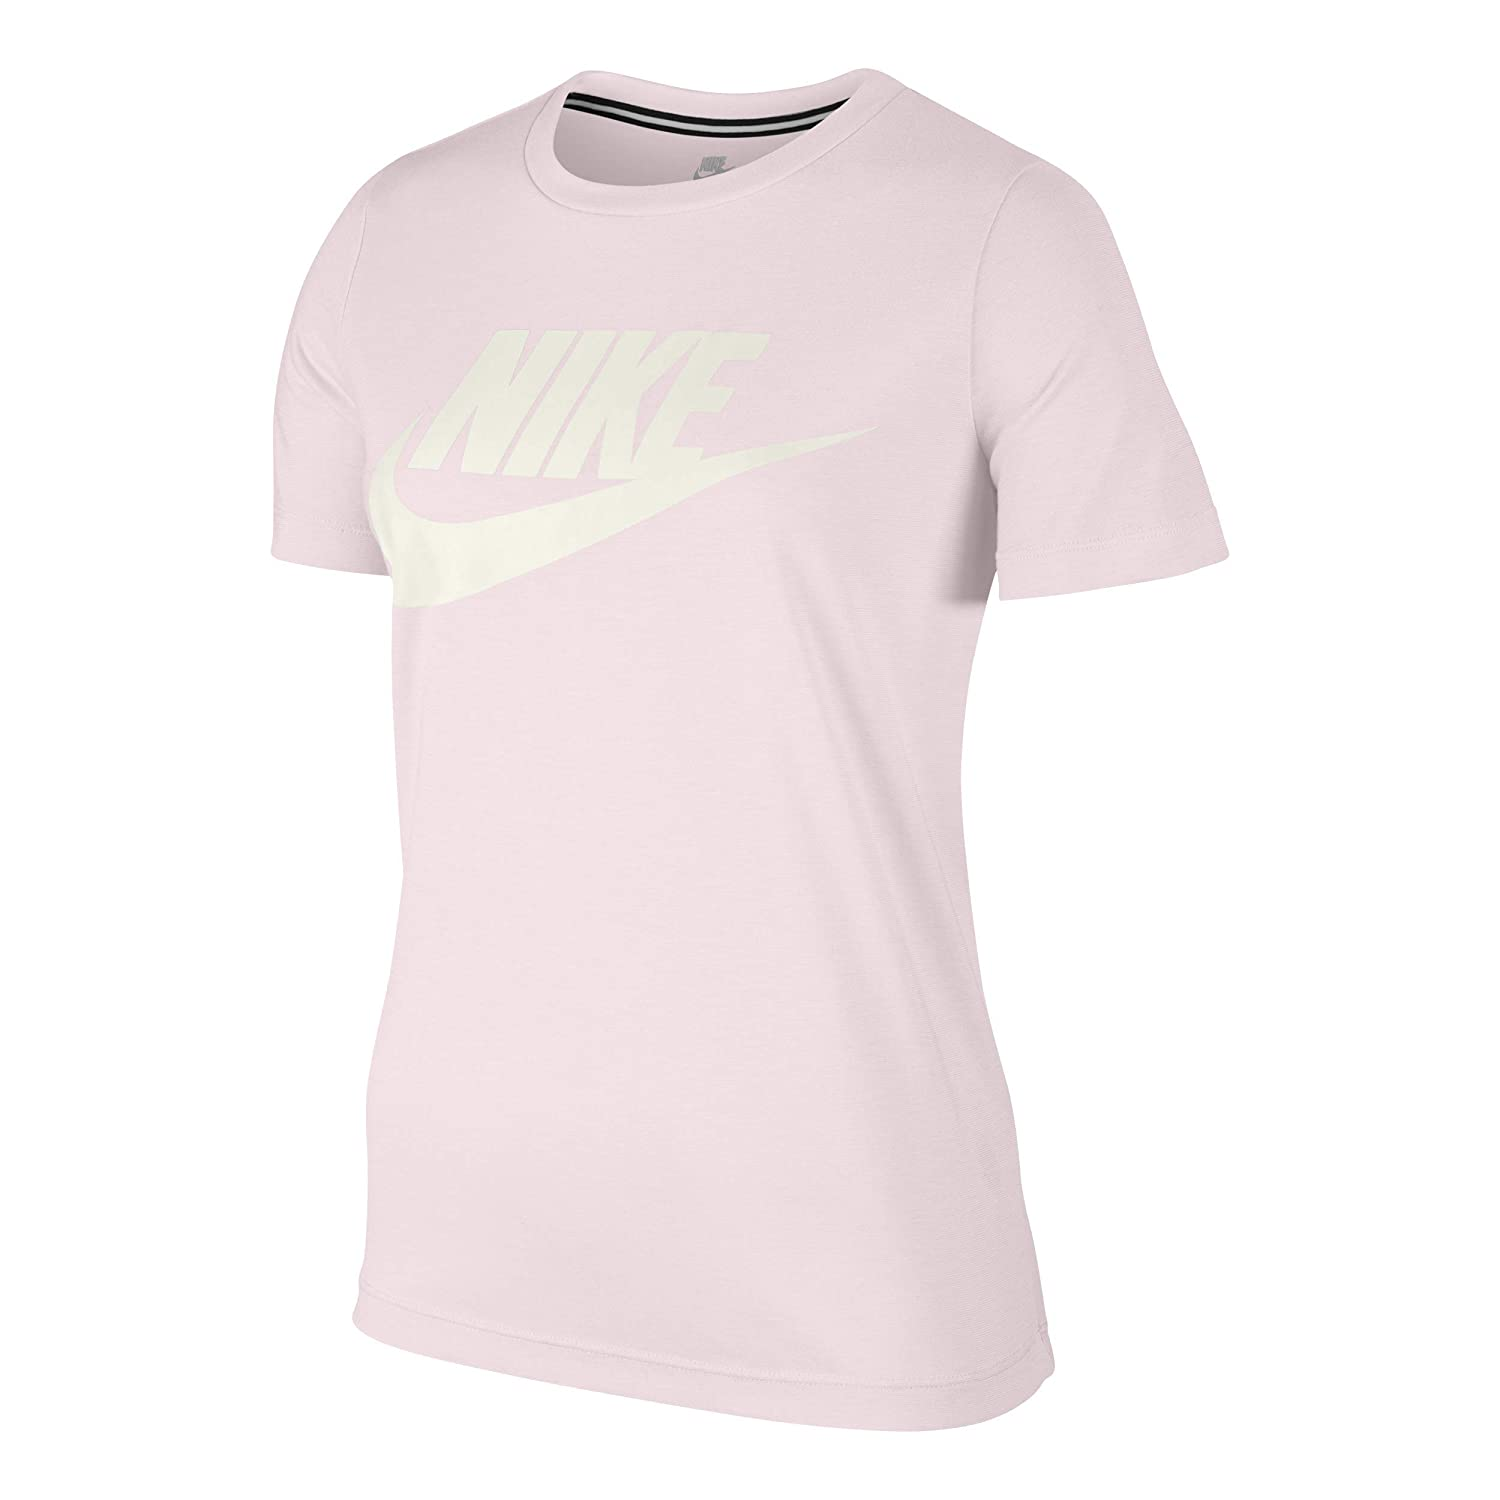 Nike HBR W NSW Essential Women s T-Shirt Short Sleeve Top With Logo ... 520fc461d